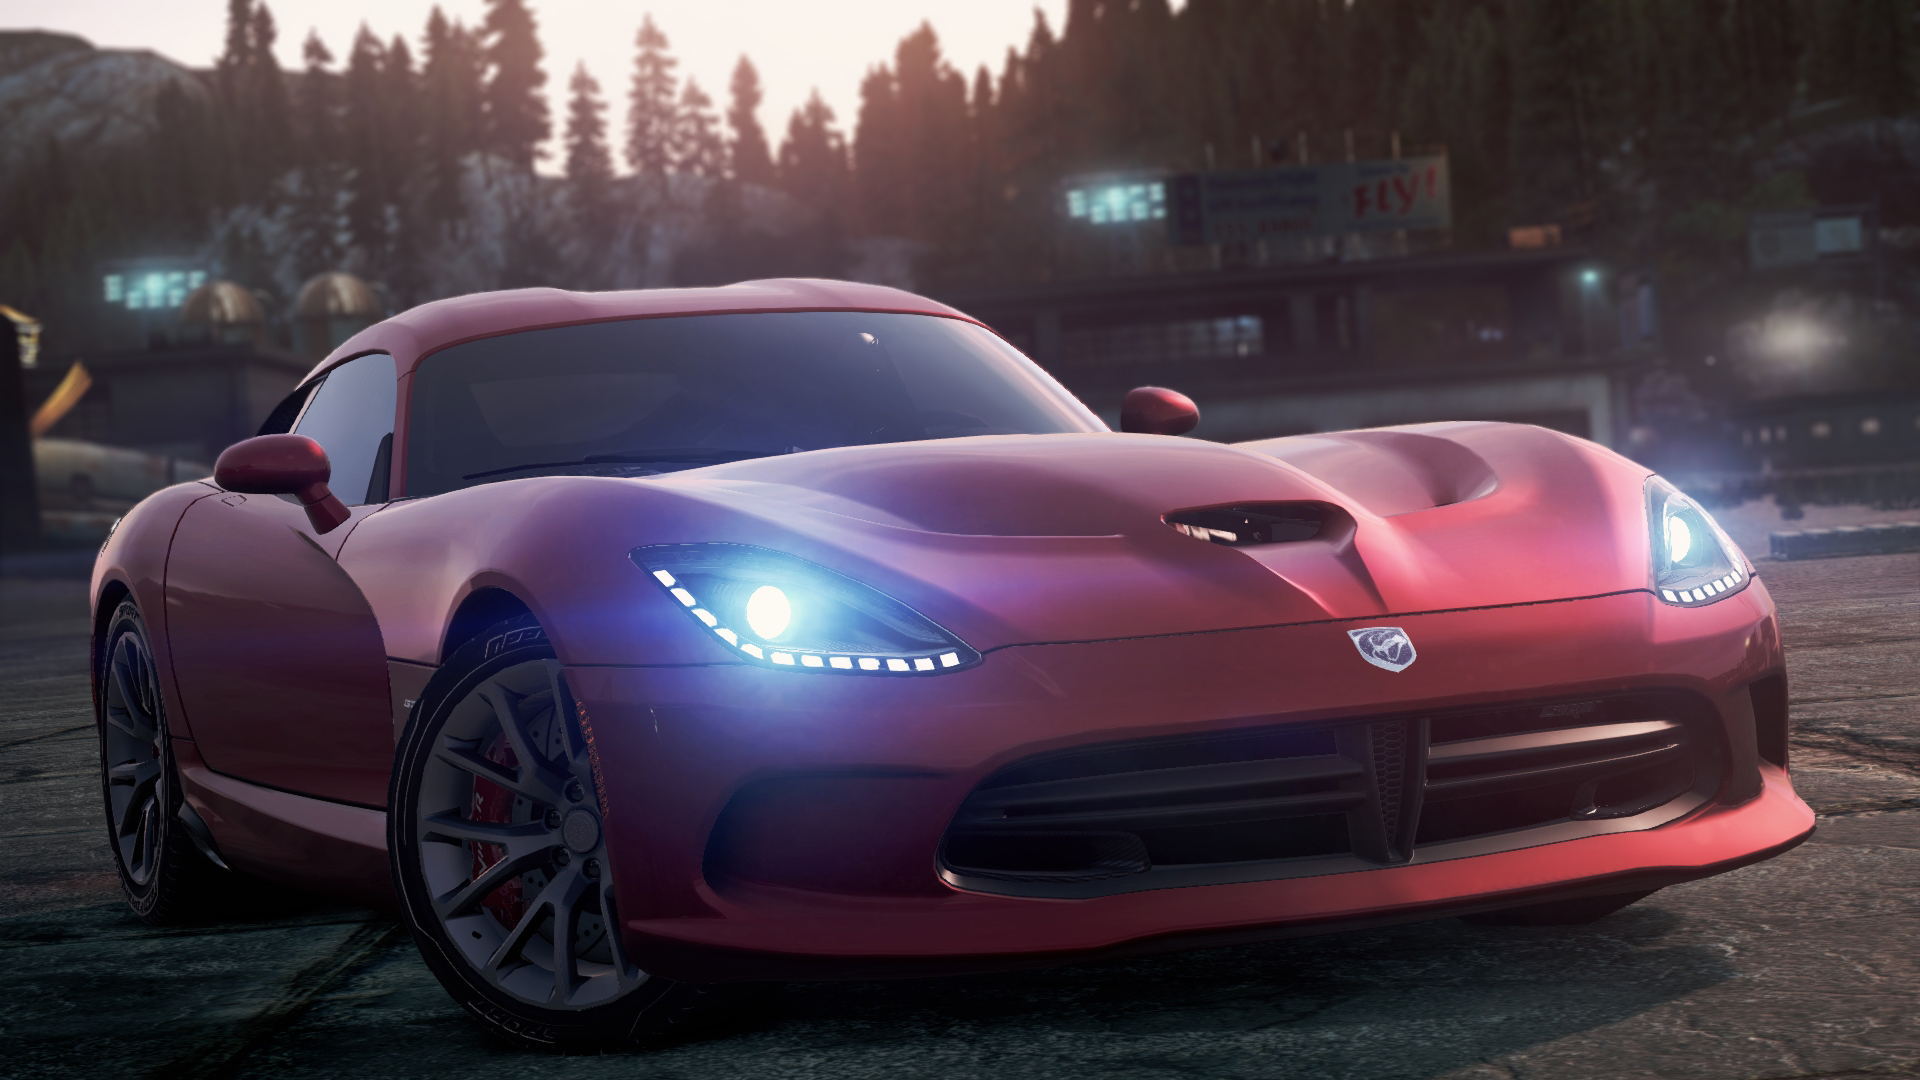 SRT Viper GTS   Need for Speed Wiki   FANDOM powered by Wikia